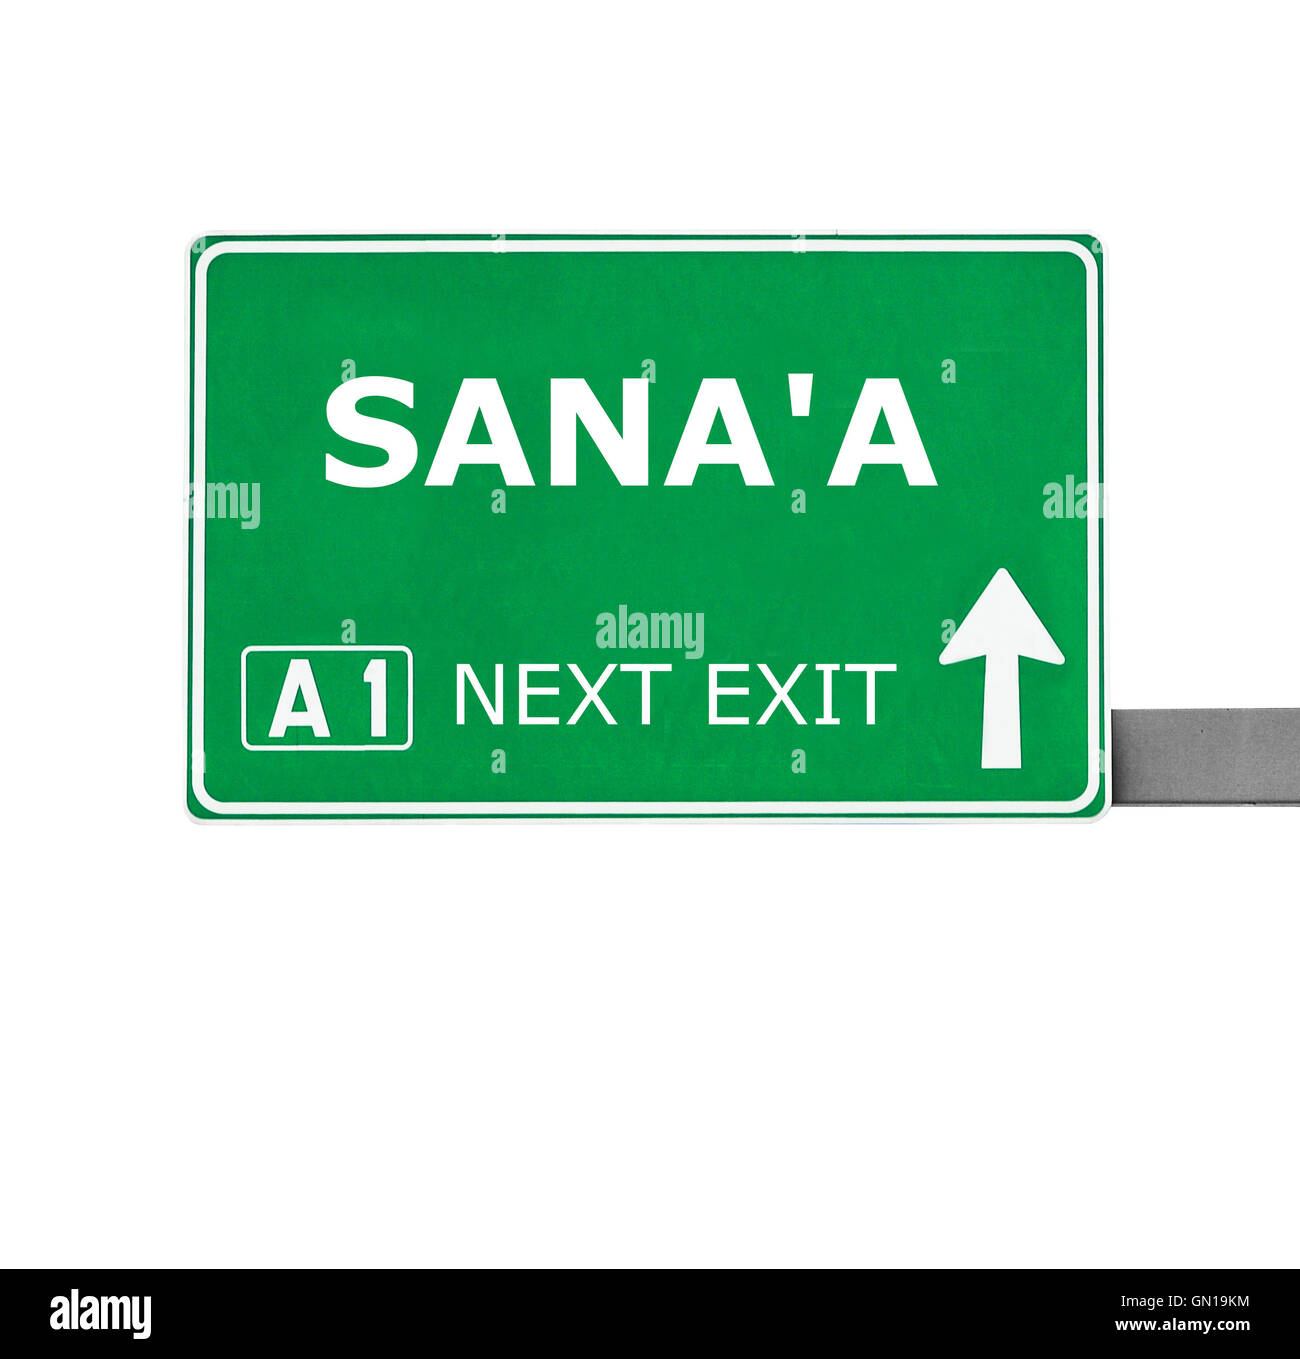 SANA'A road sign isolated on white - Stock Image